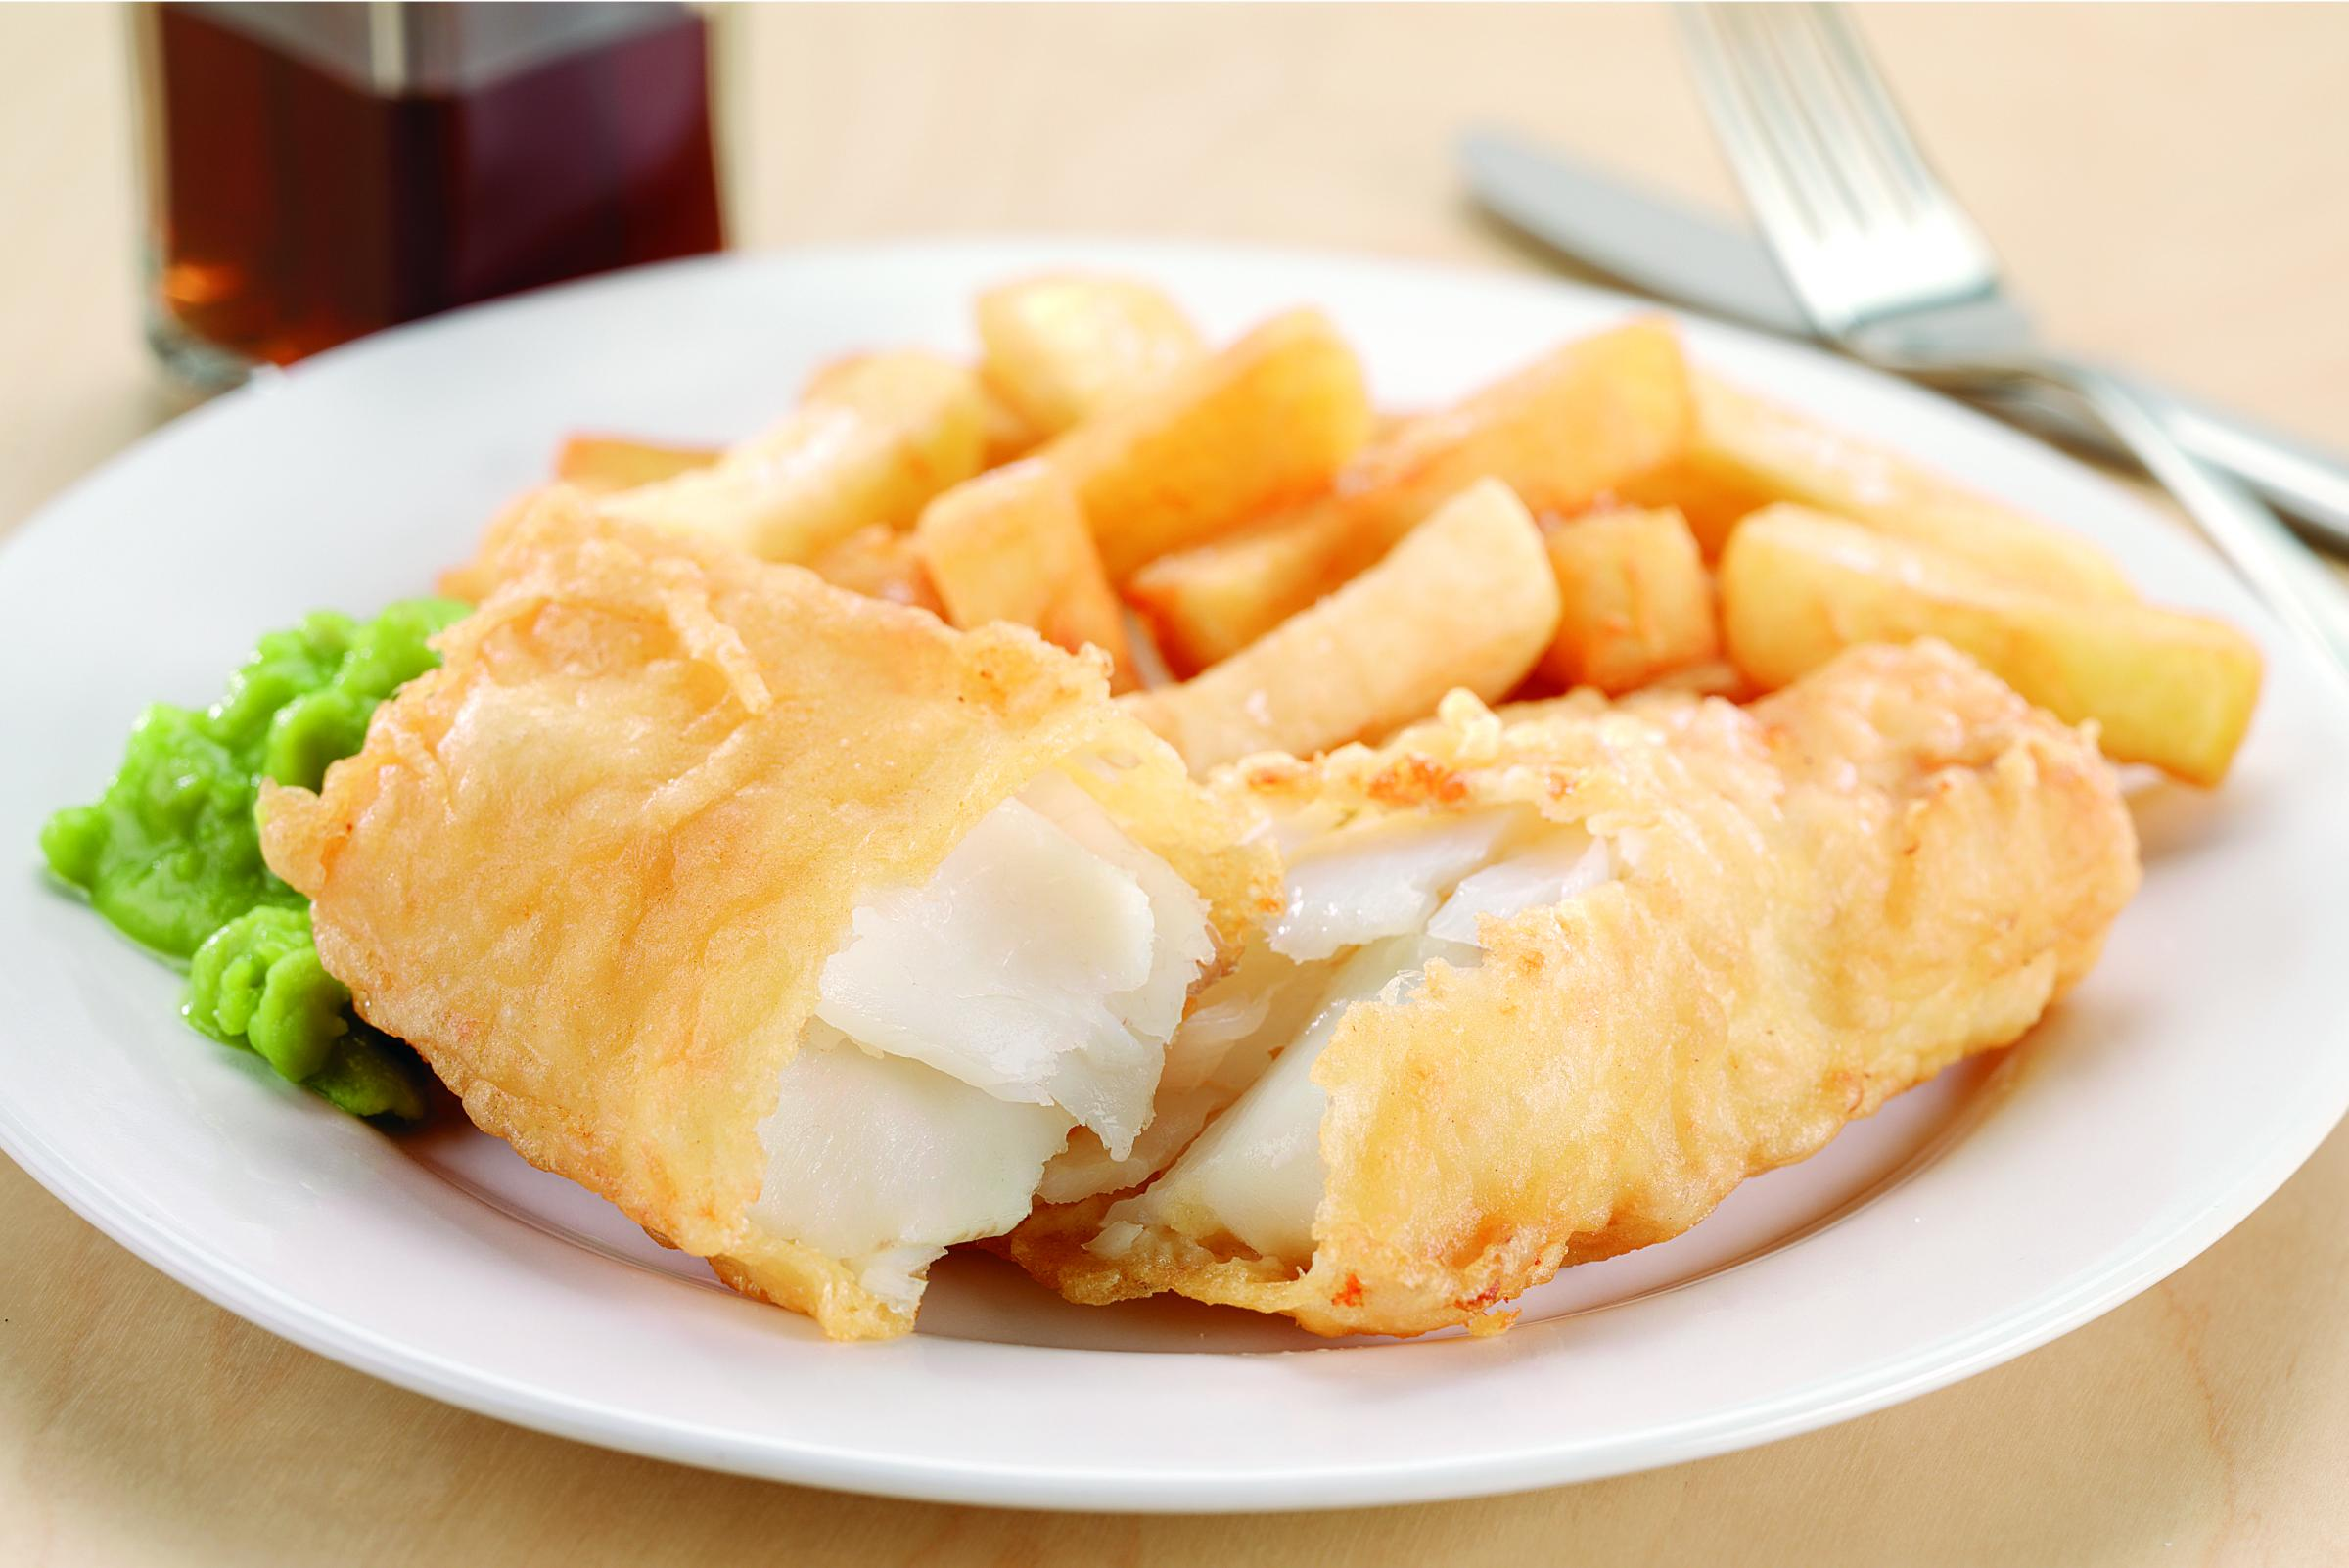 Fish and chip shop shortlisted for national award